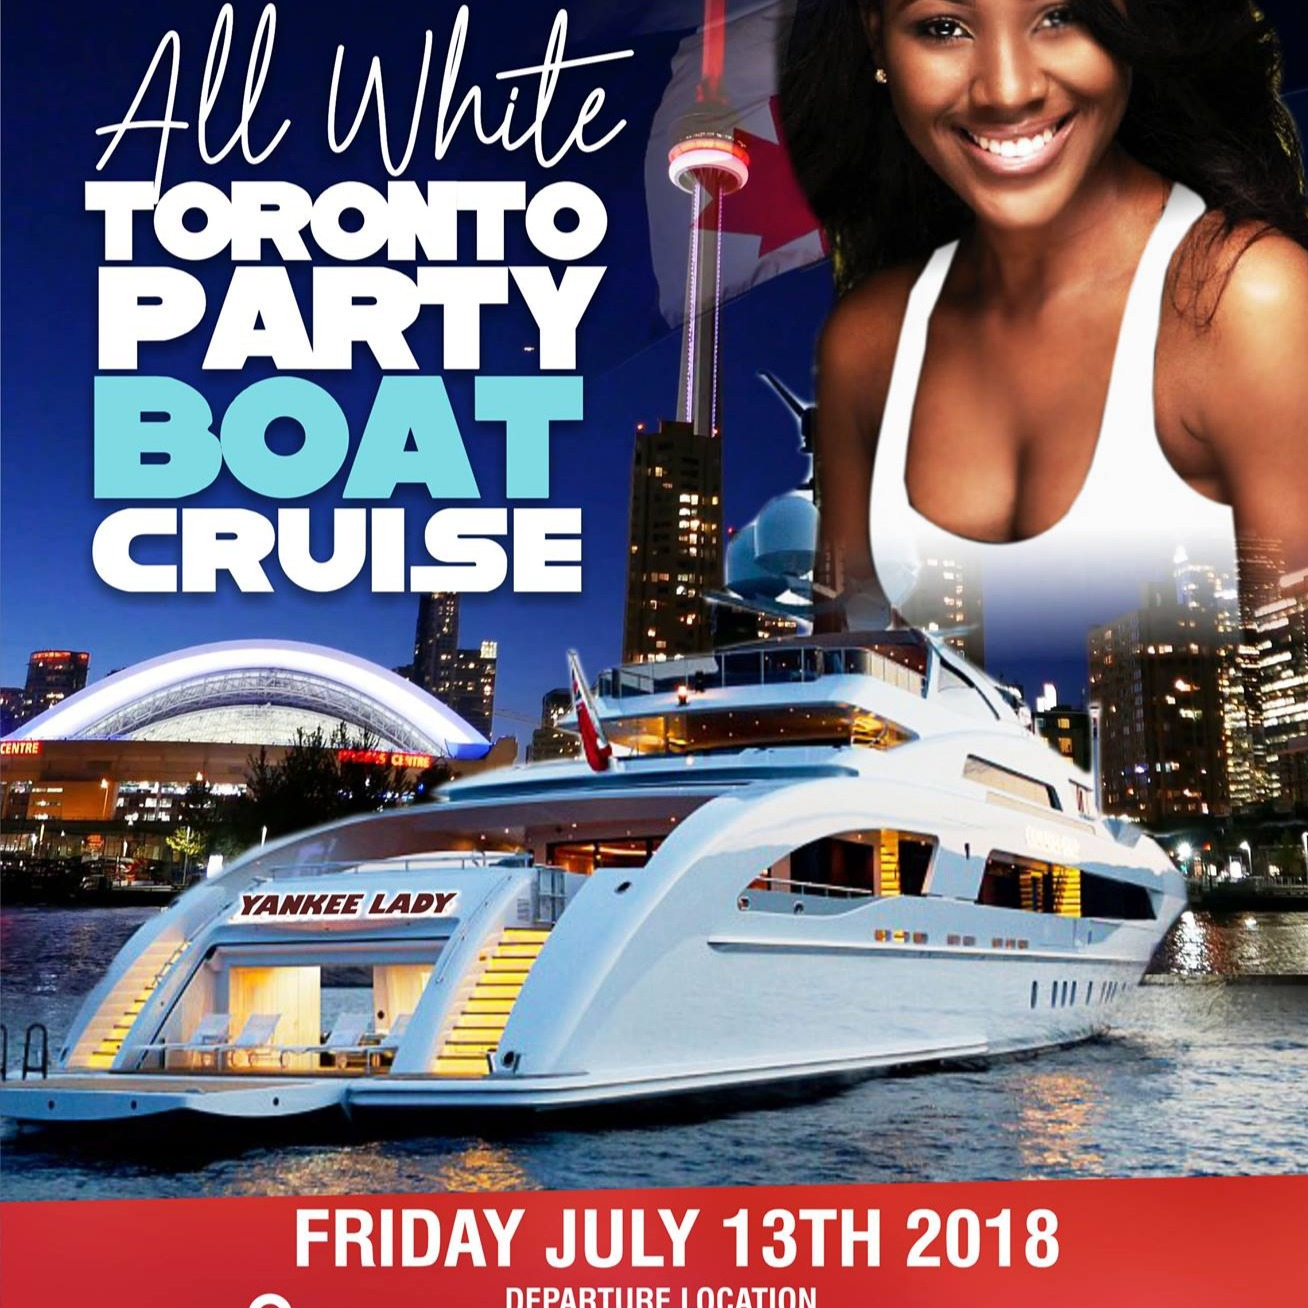 ALL WHITE TORONTO PARTY BOAT CRUISE